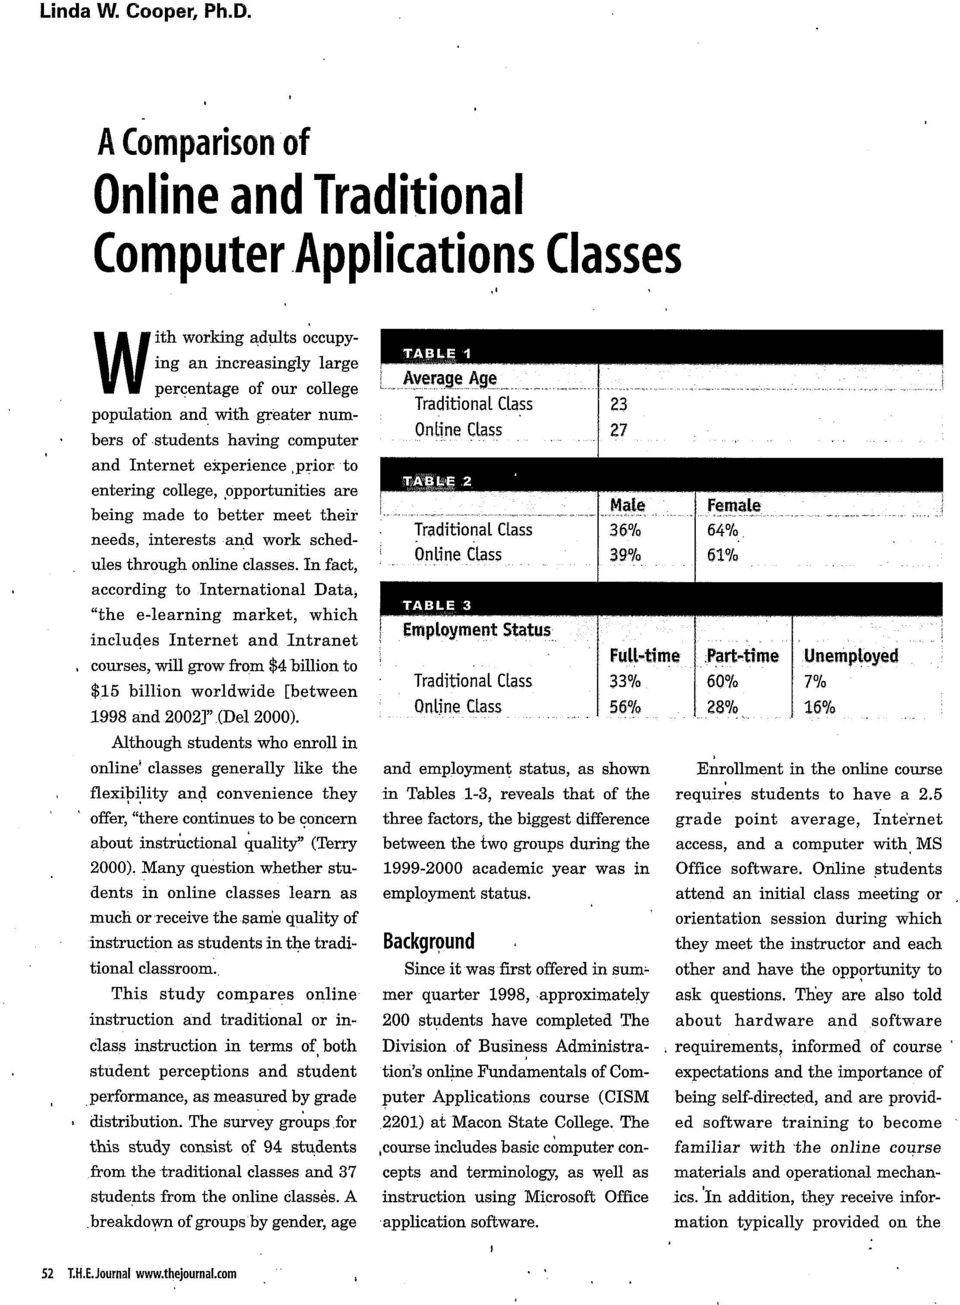 having computer and Internet experience prior to entering college, opportunities are being made to better meet their needs, interests and work schedules through online classes.